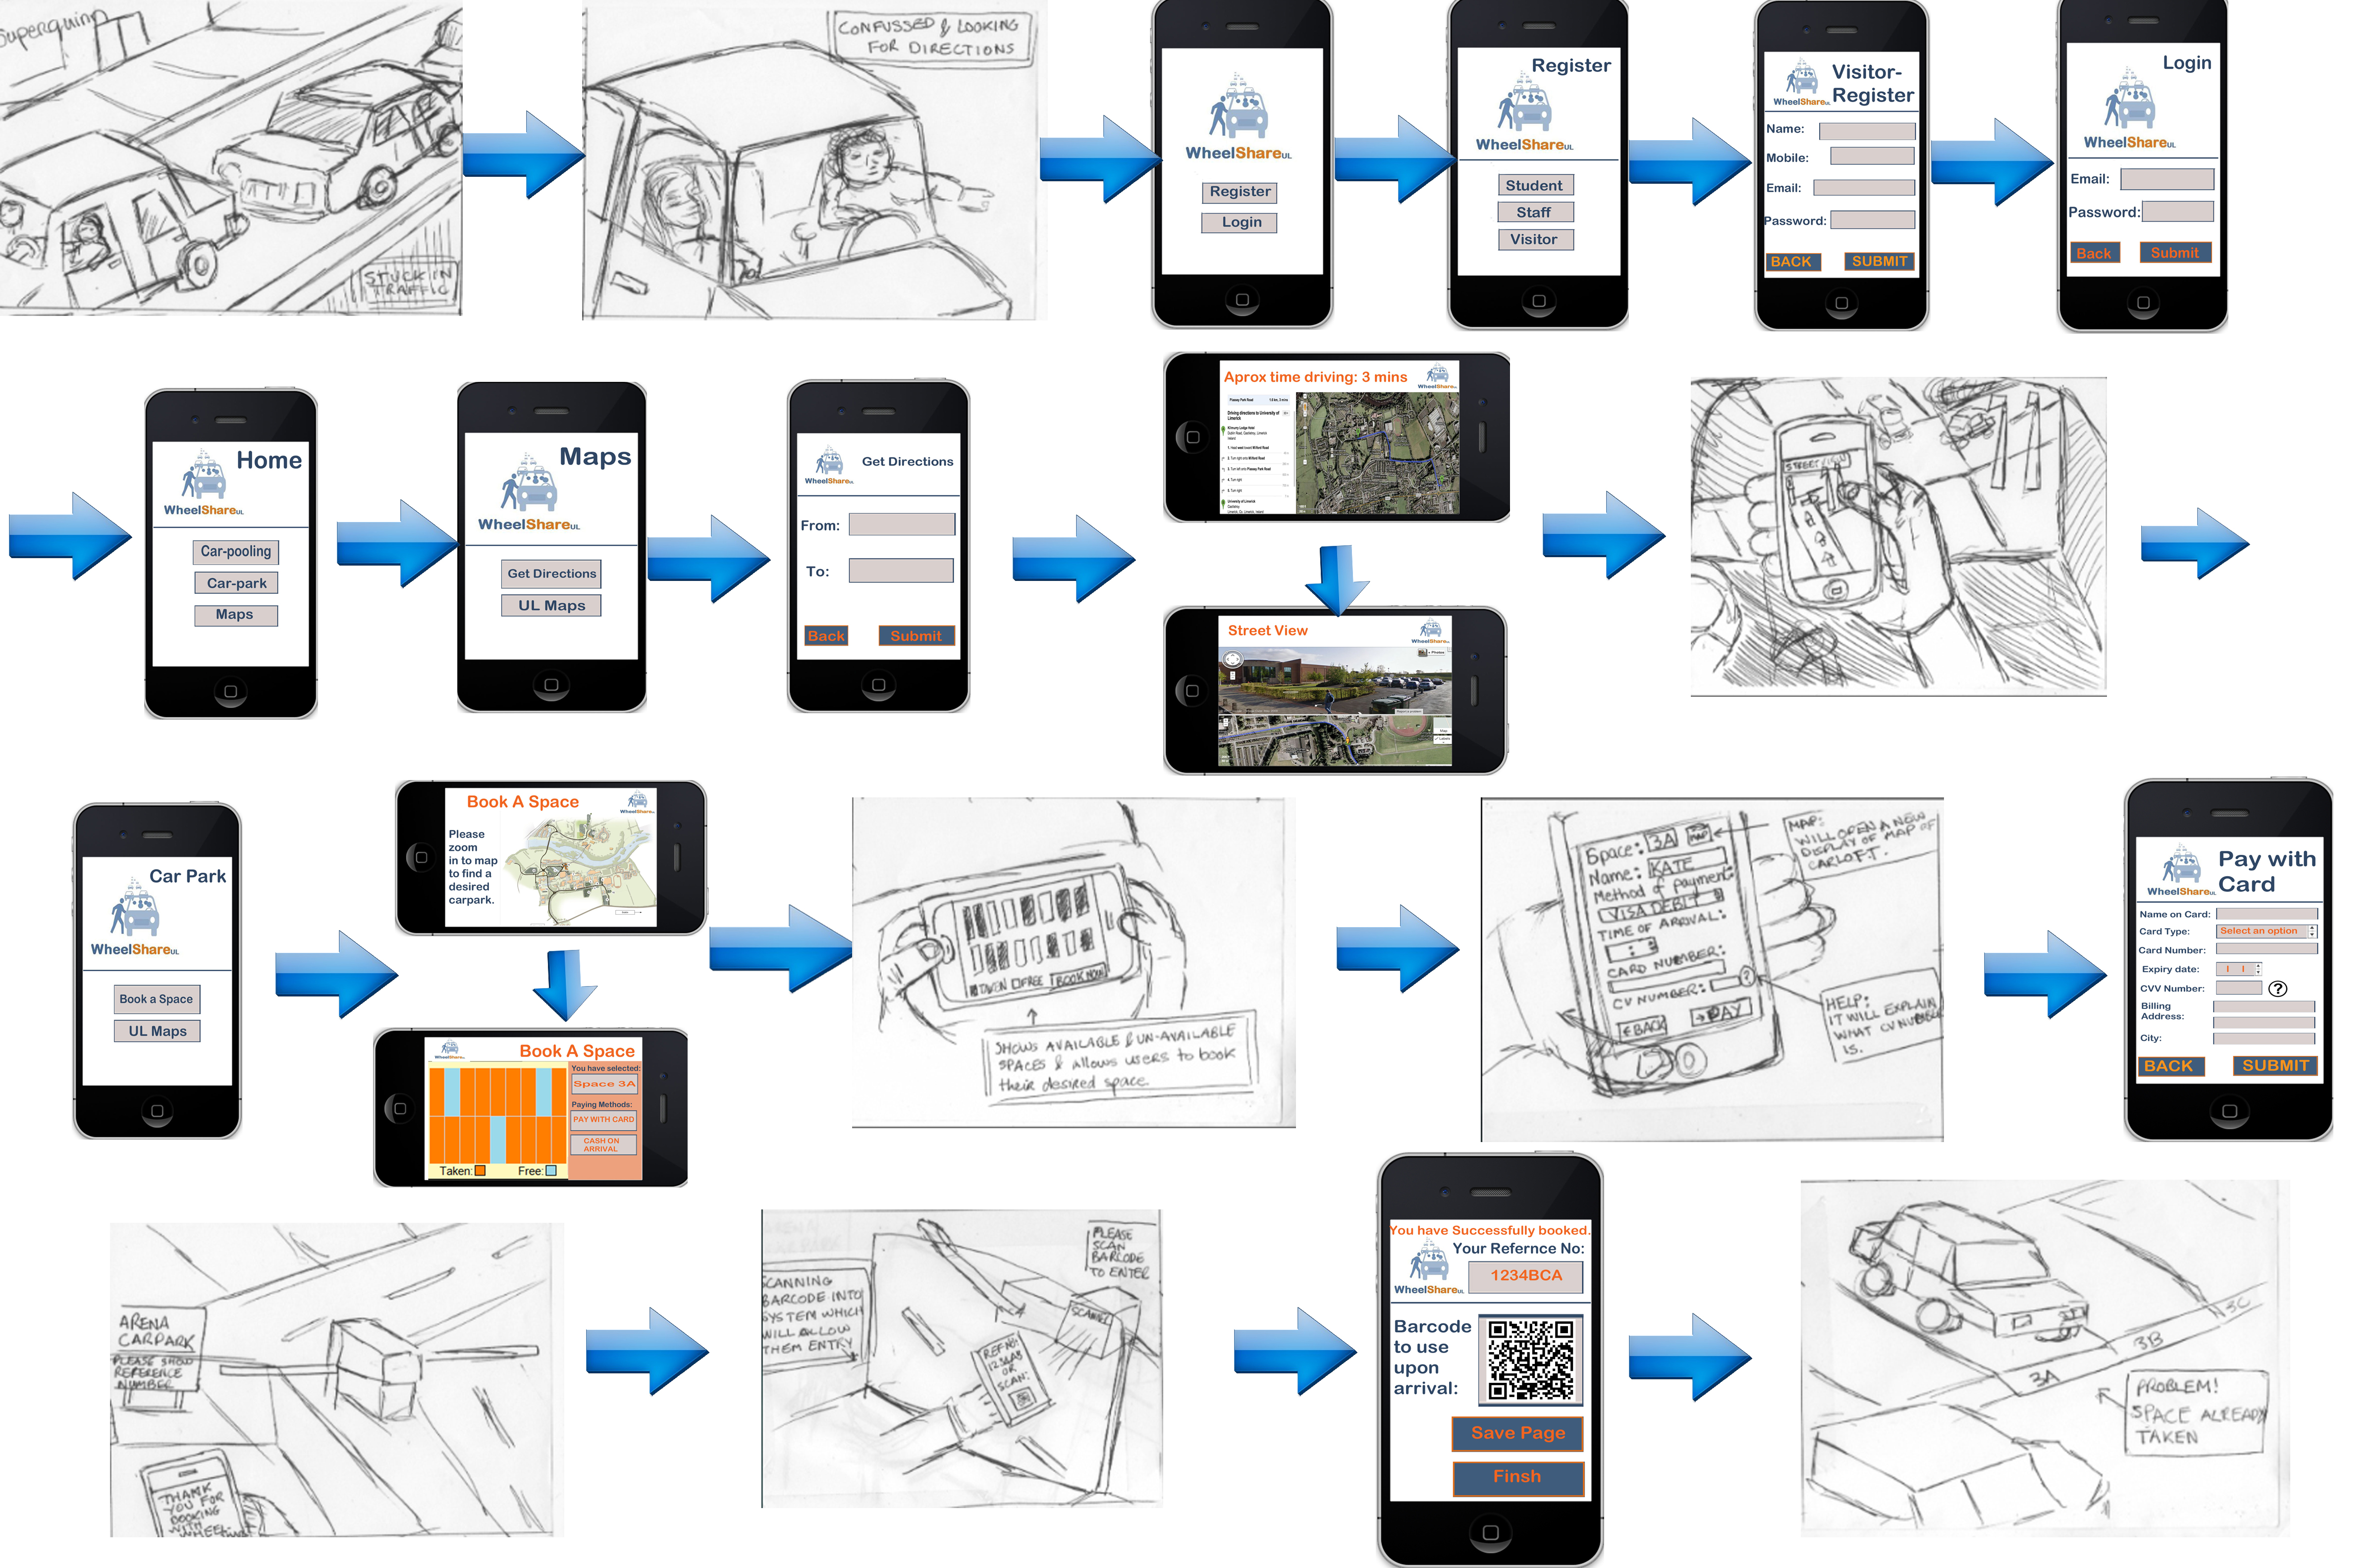 Interaction Design Designing A Mobile App